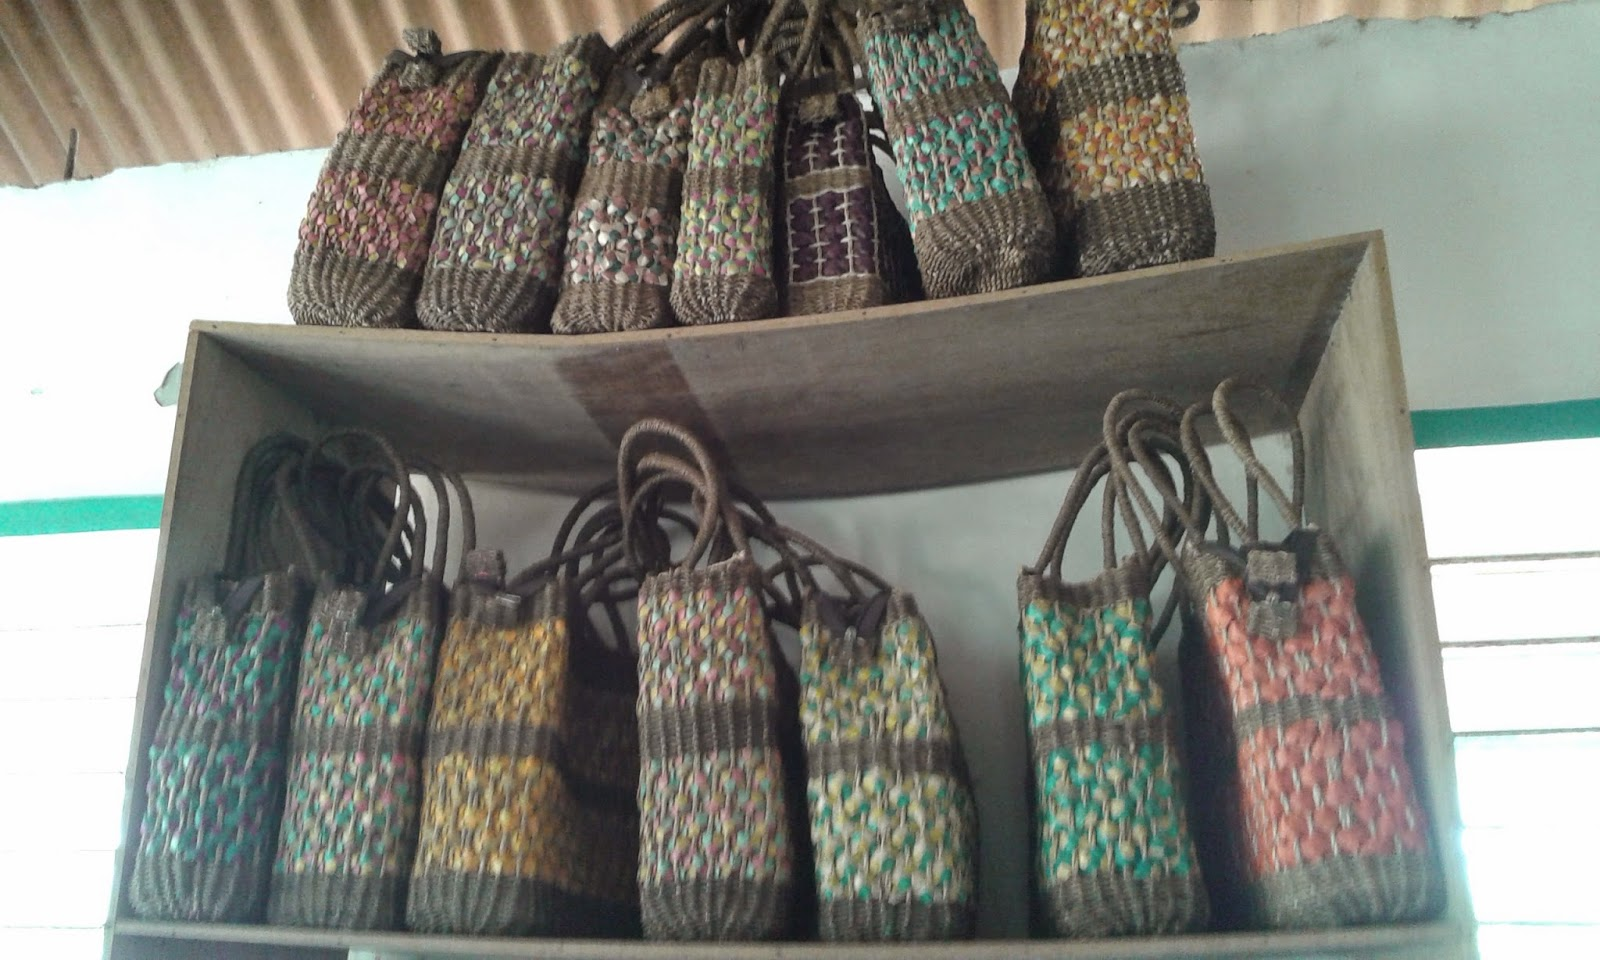 Foot And Fire Souvenirs From Pandan Antique Bariw Plant